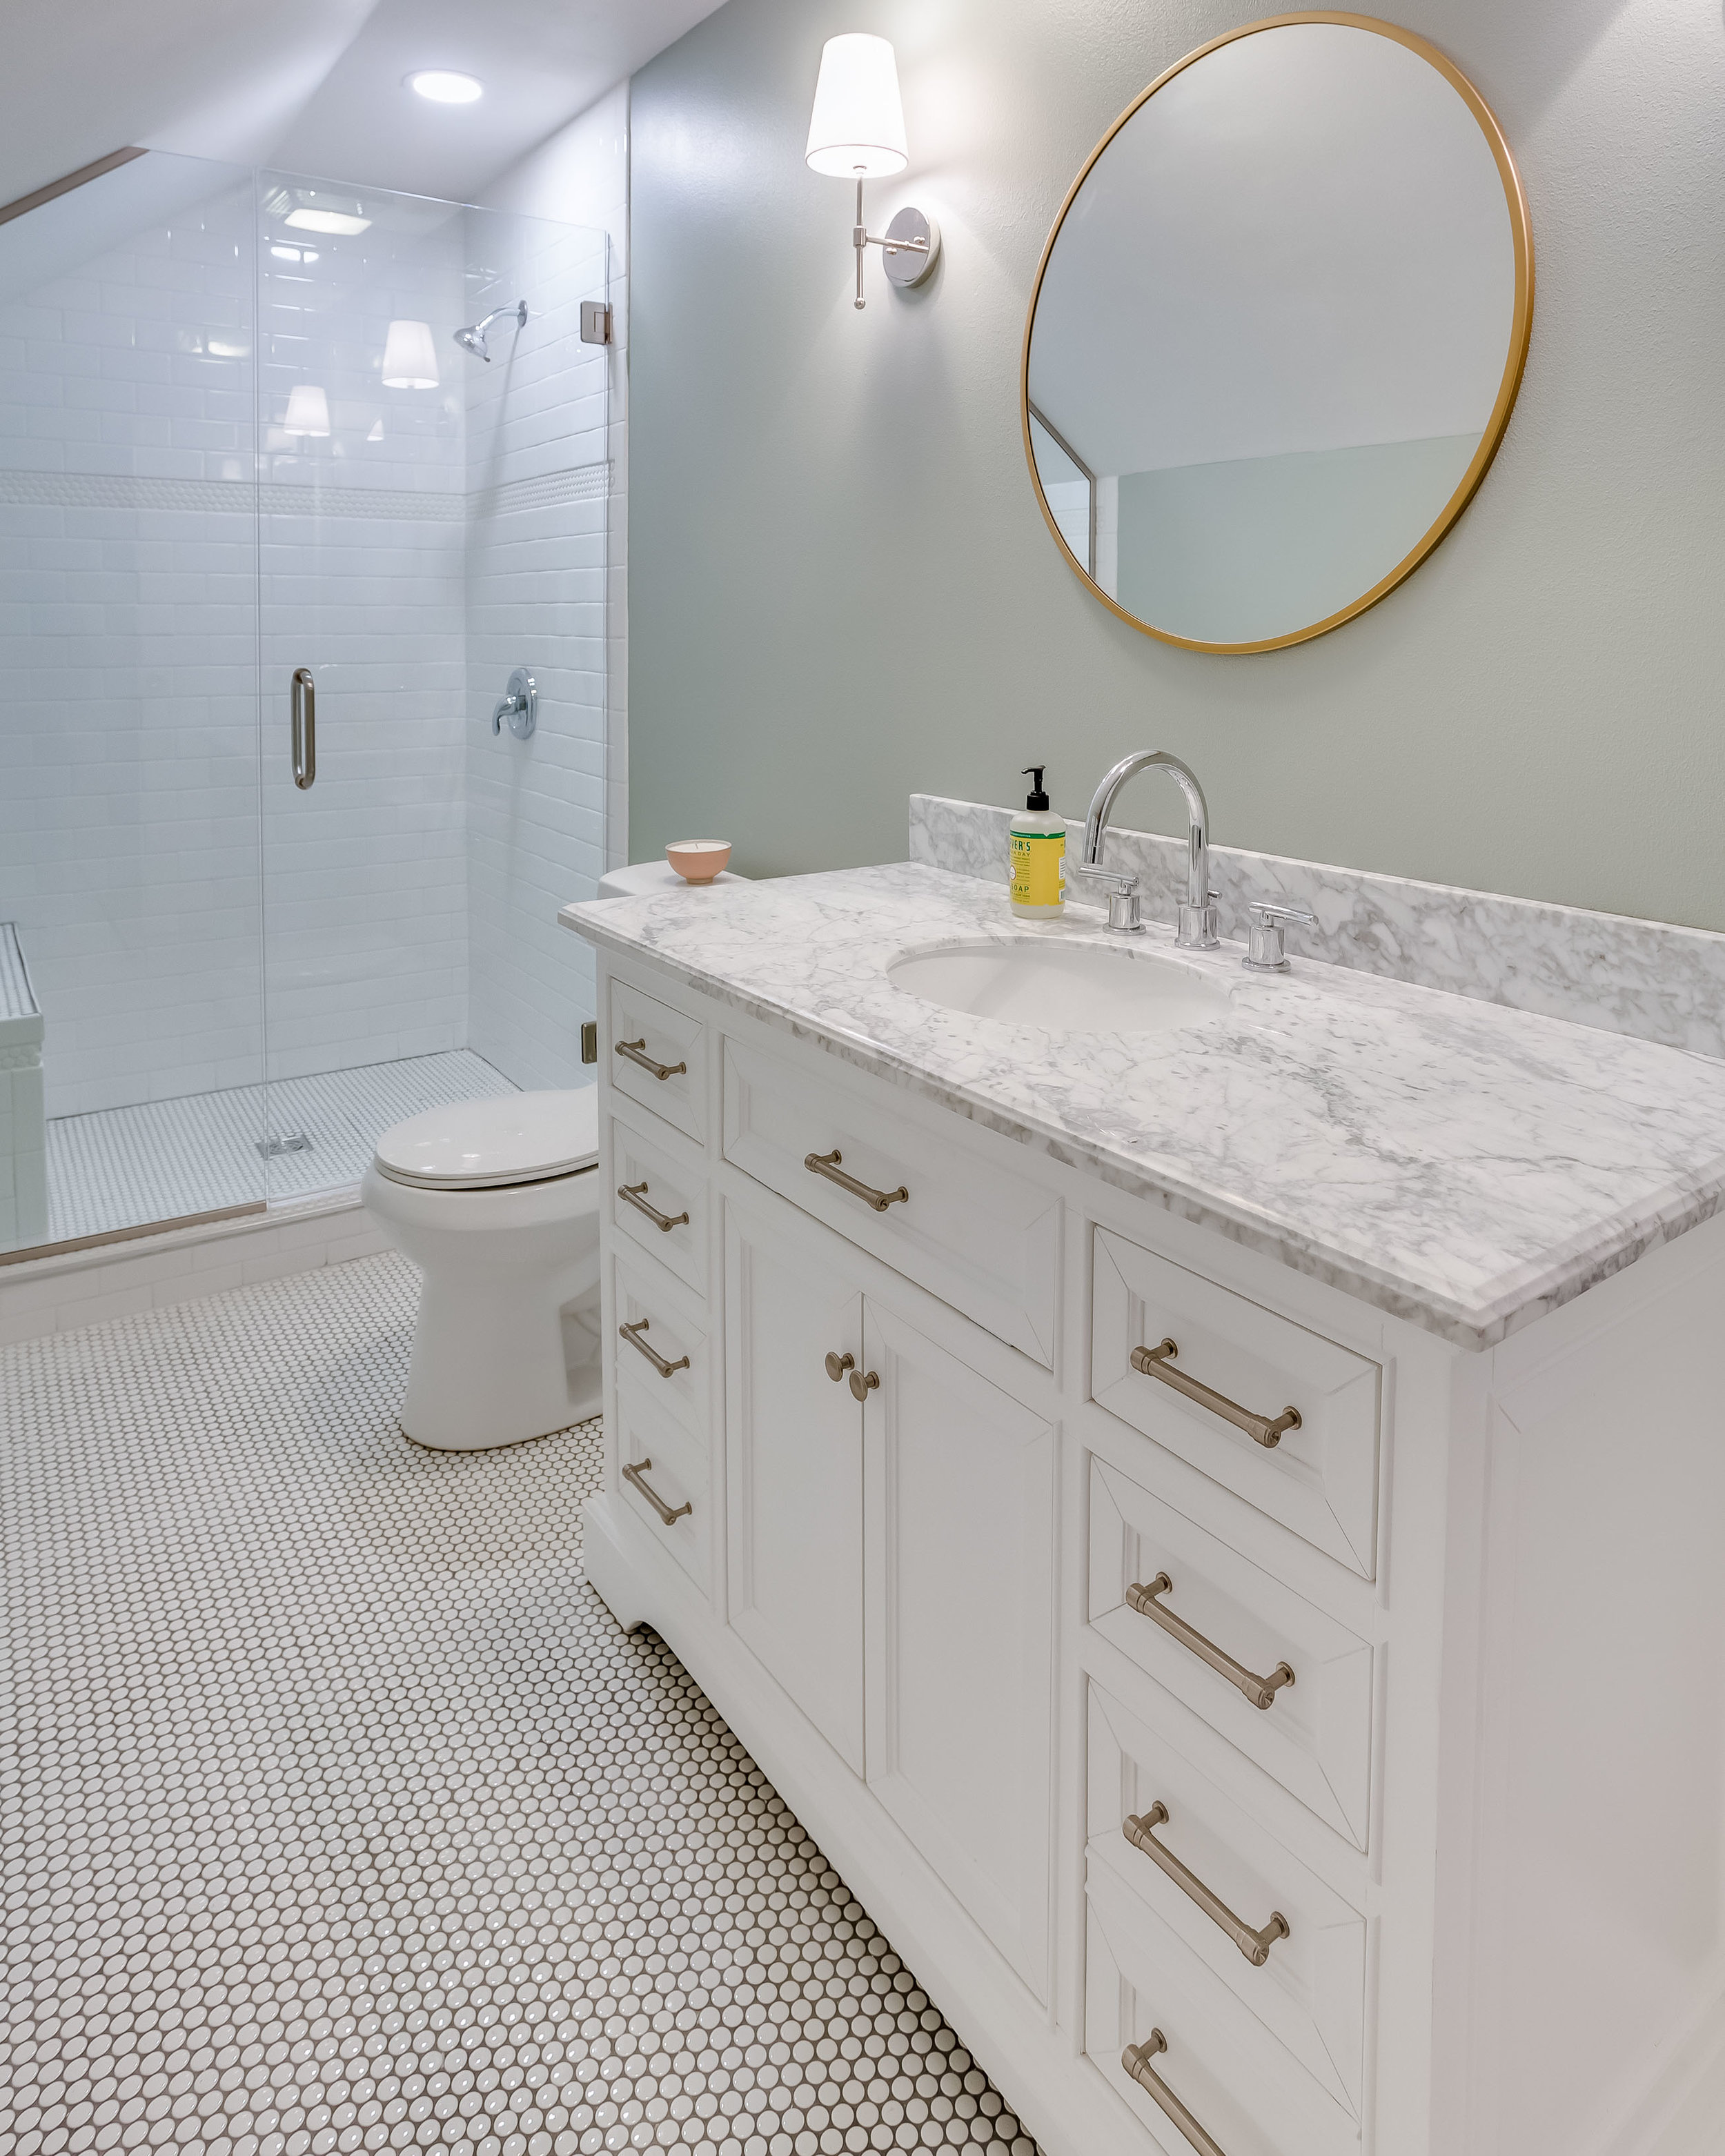 After, the bathroom has an improved layout with a walk in shower and stylish features.